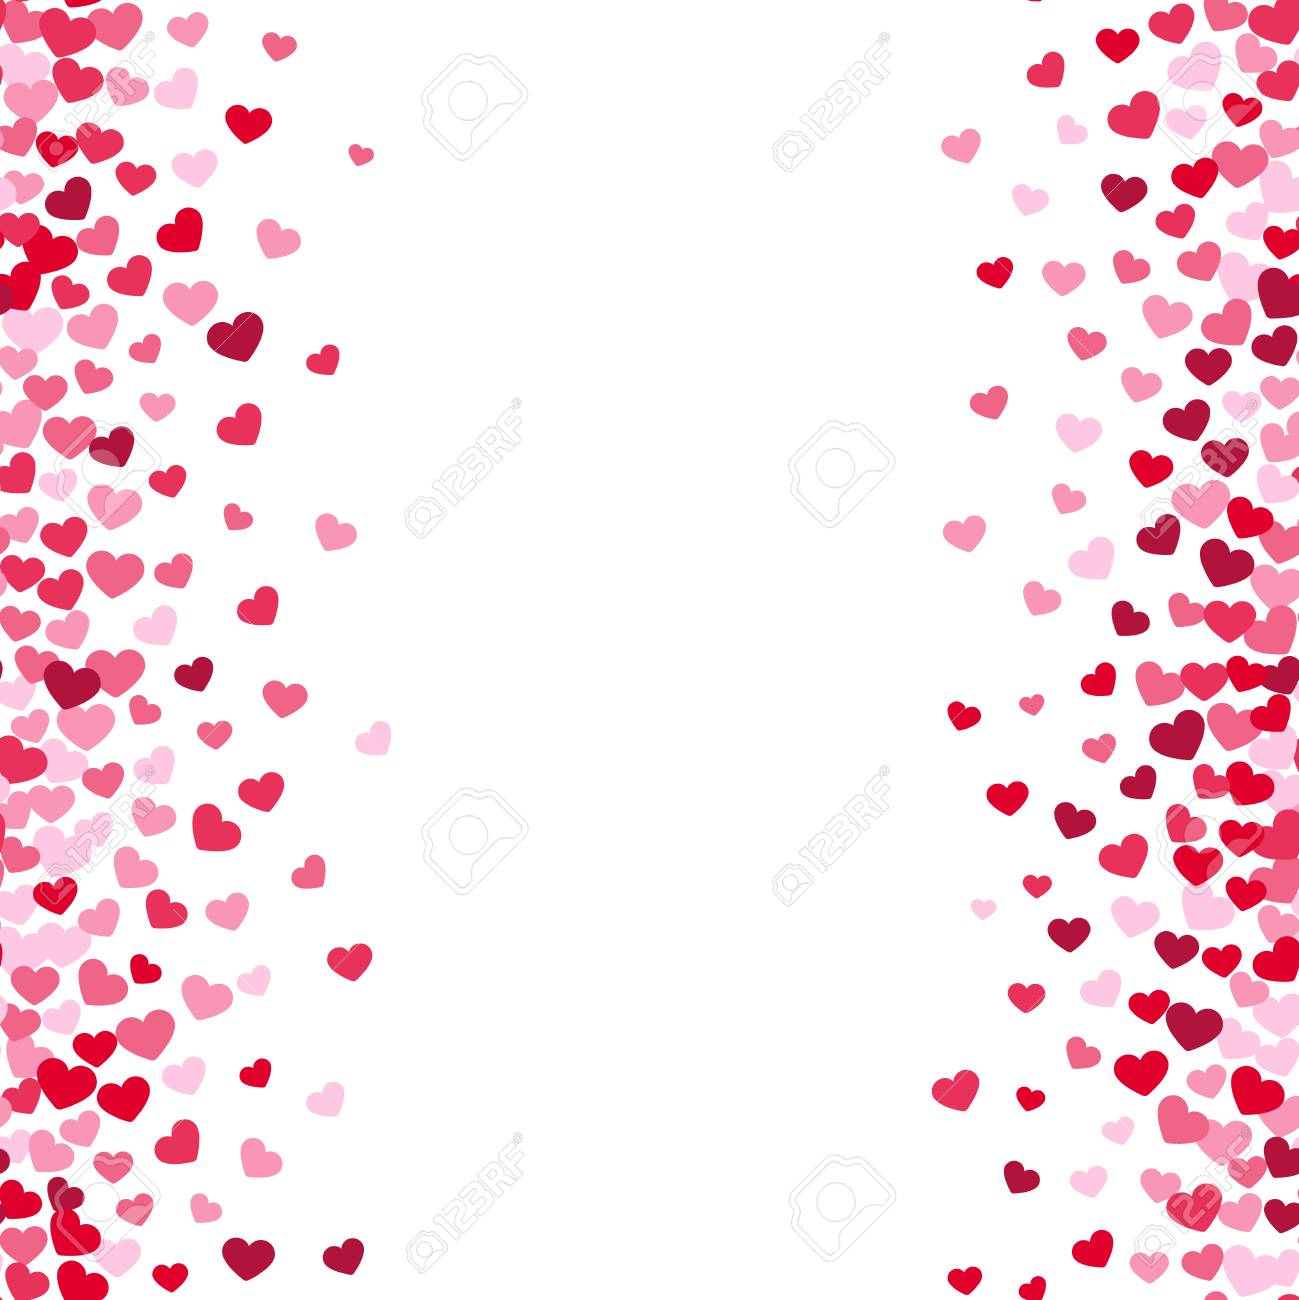 Pleasing Red Heart Valentinesday Card Template Romance Valentine Backgrouns Pink Romance Valentine Backgrouns Pink Red Heart inspiration Valentines Day Borders